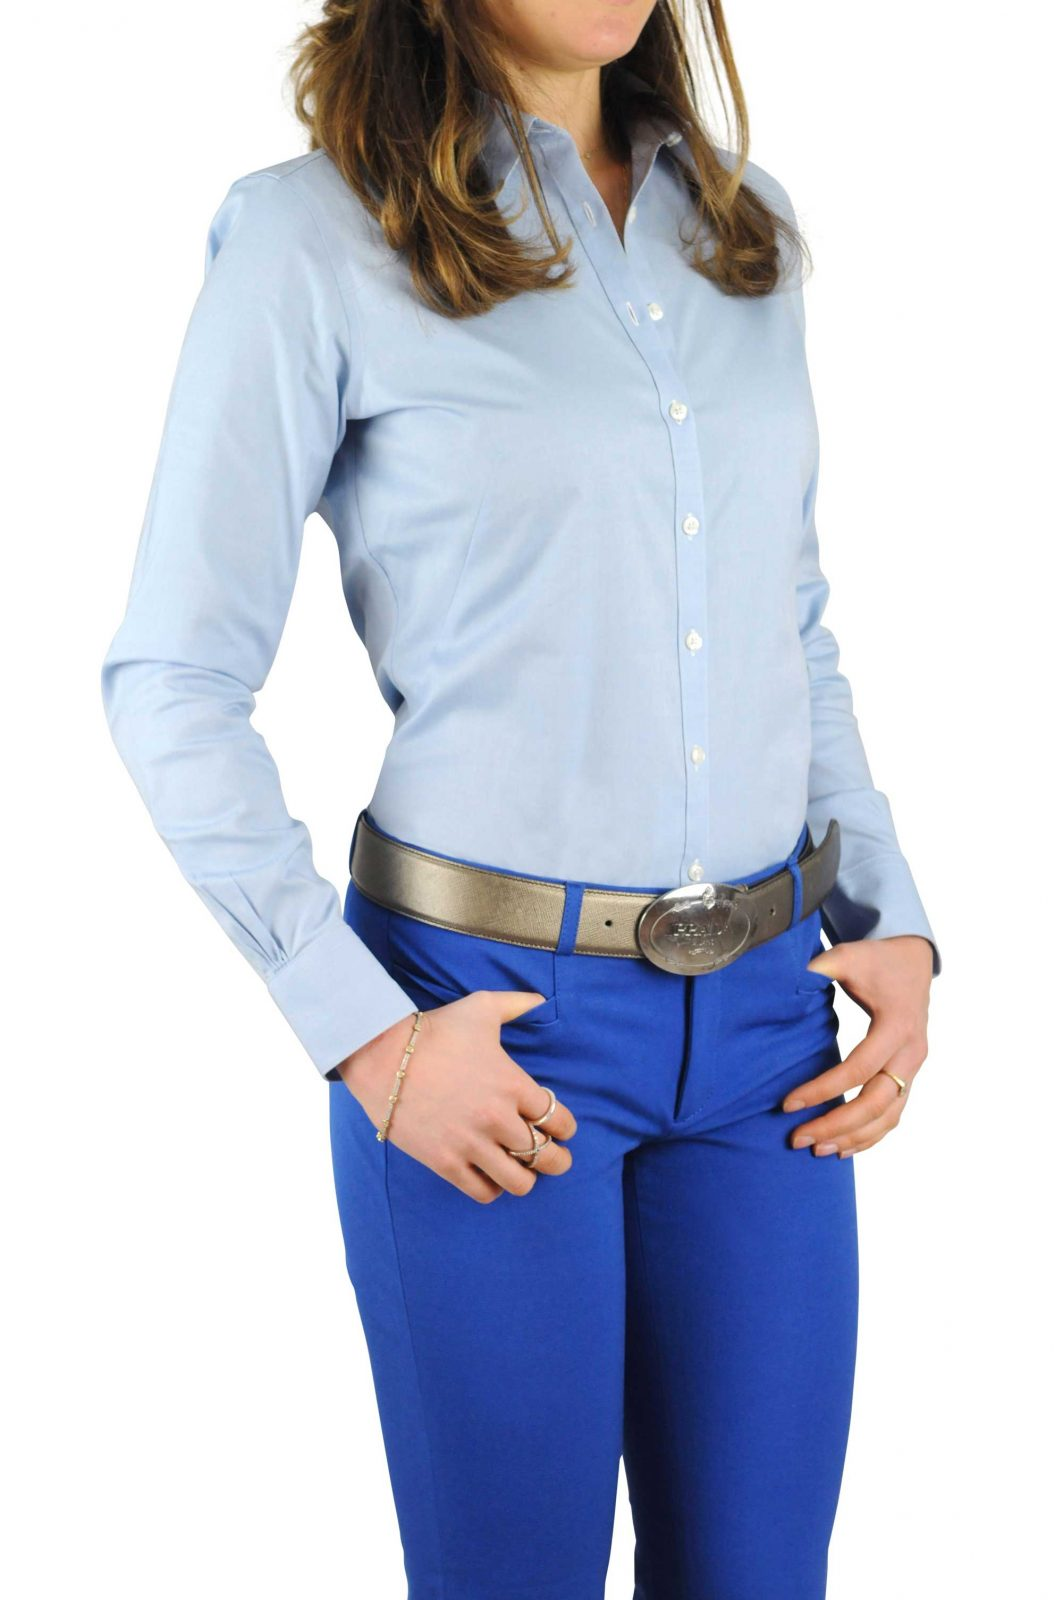 Woman confidently wears Tuck-N-Stay to keep her crisp pressed blue shirt tucked into her pants